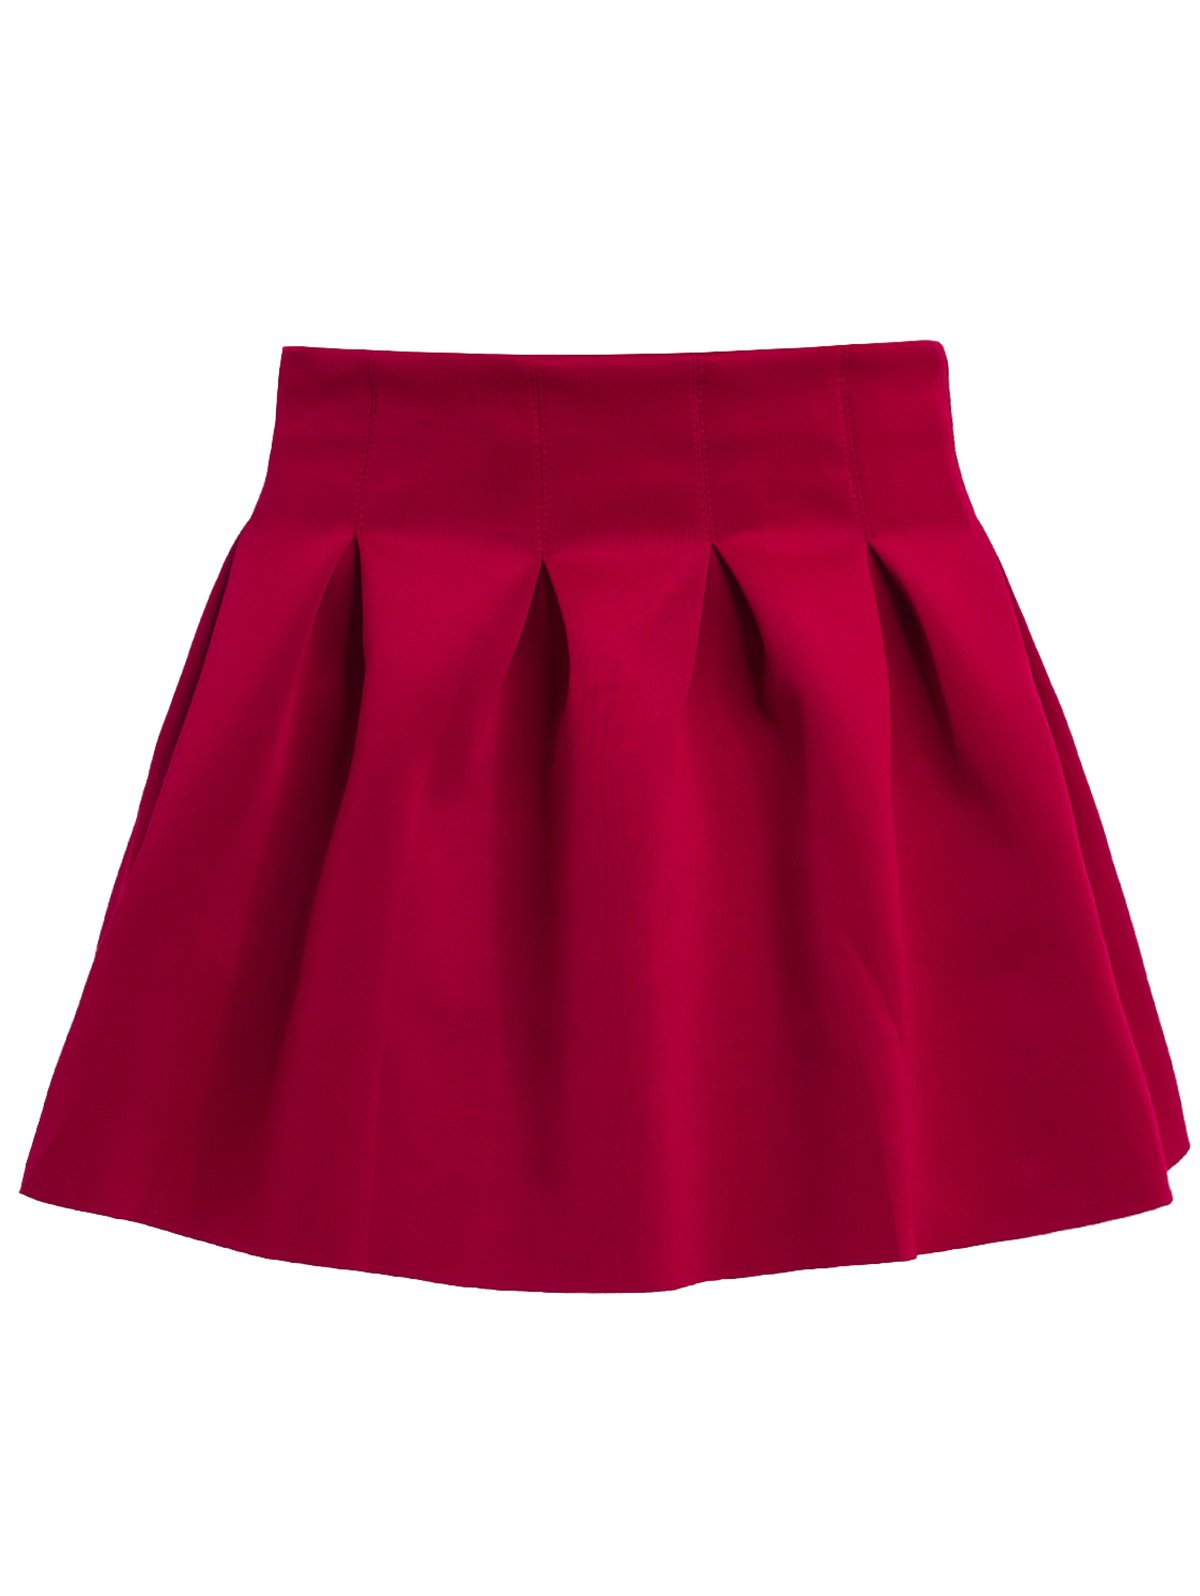 Sweet Ball Candy Color Skirt For Women - WINE RED L